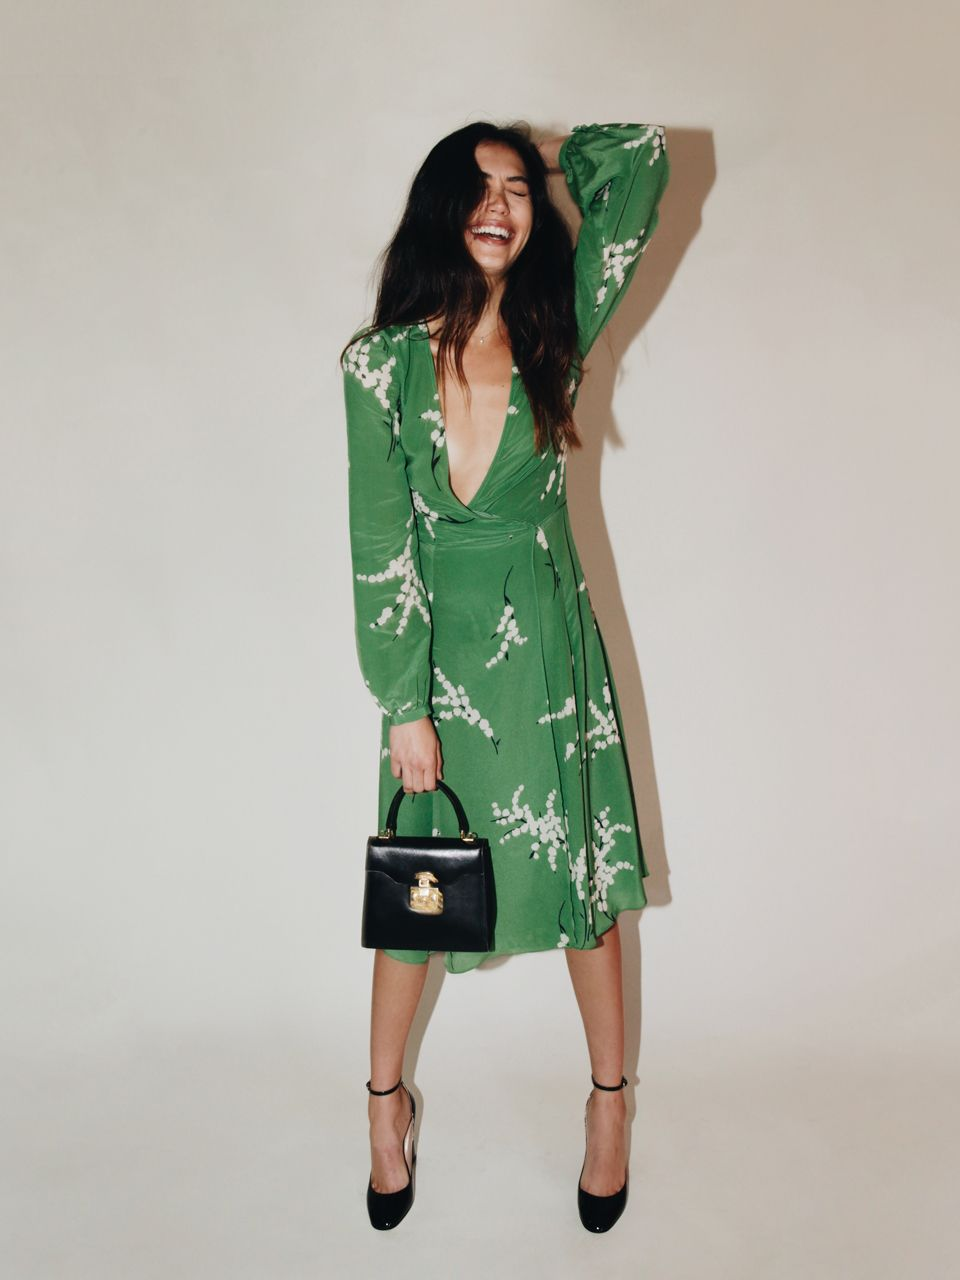 428cb106373 I always love a good wrap dress. Kinda wish this was shorter but also love  the statement it makes. Pretty! The Violette - Summer Loving Green ...